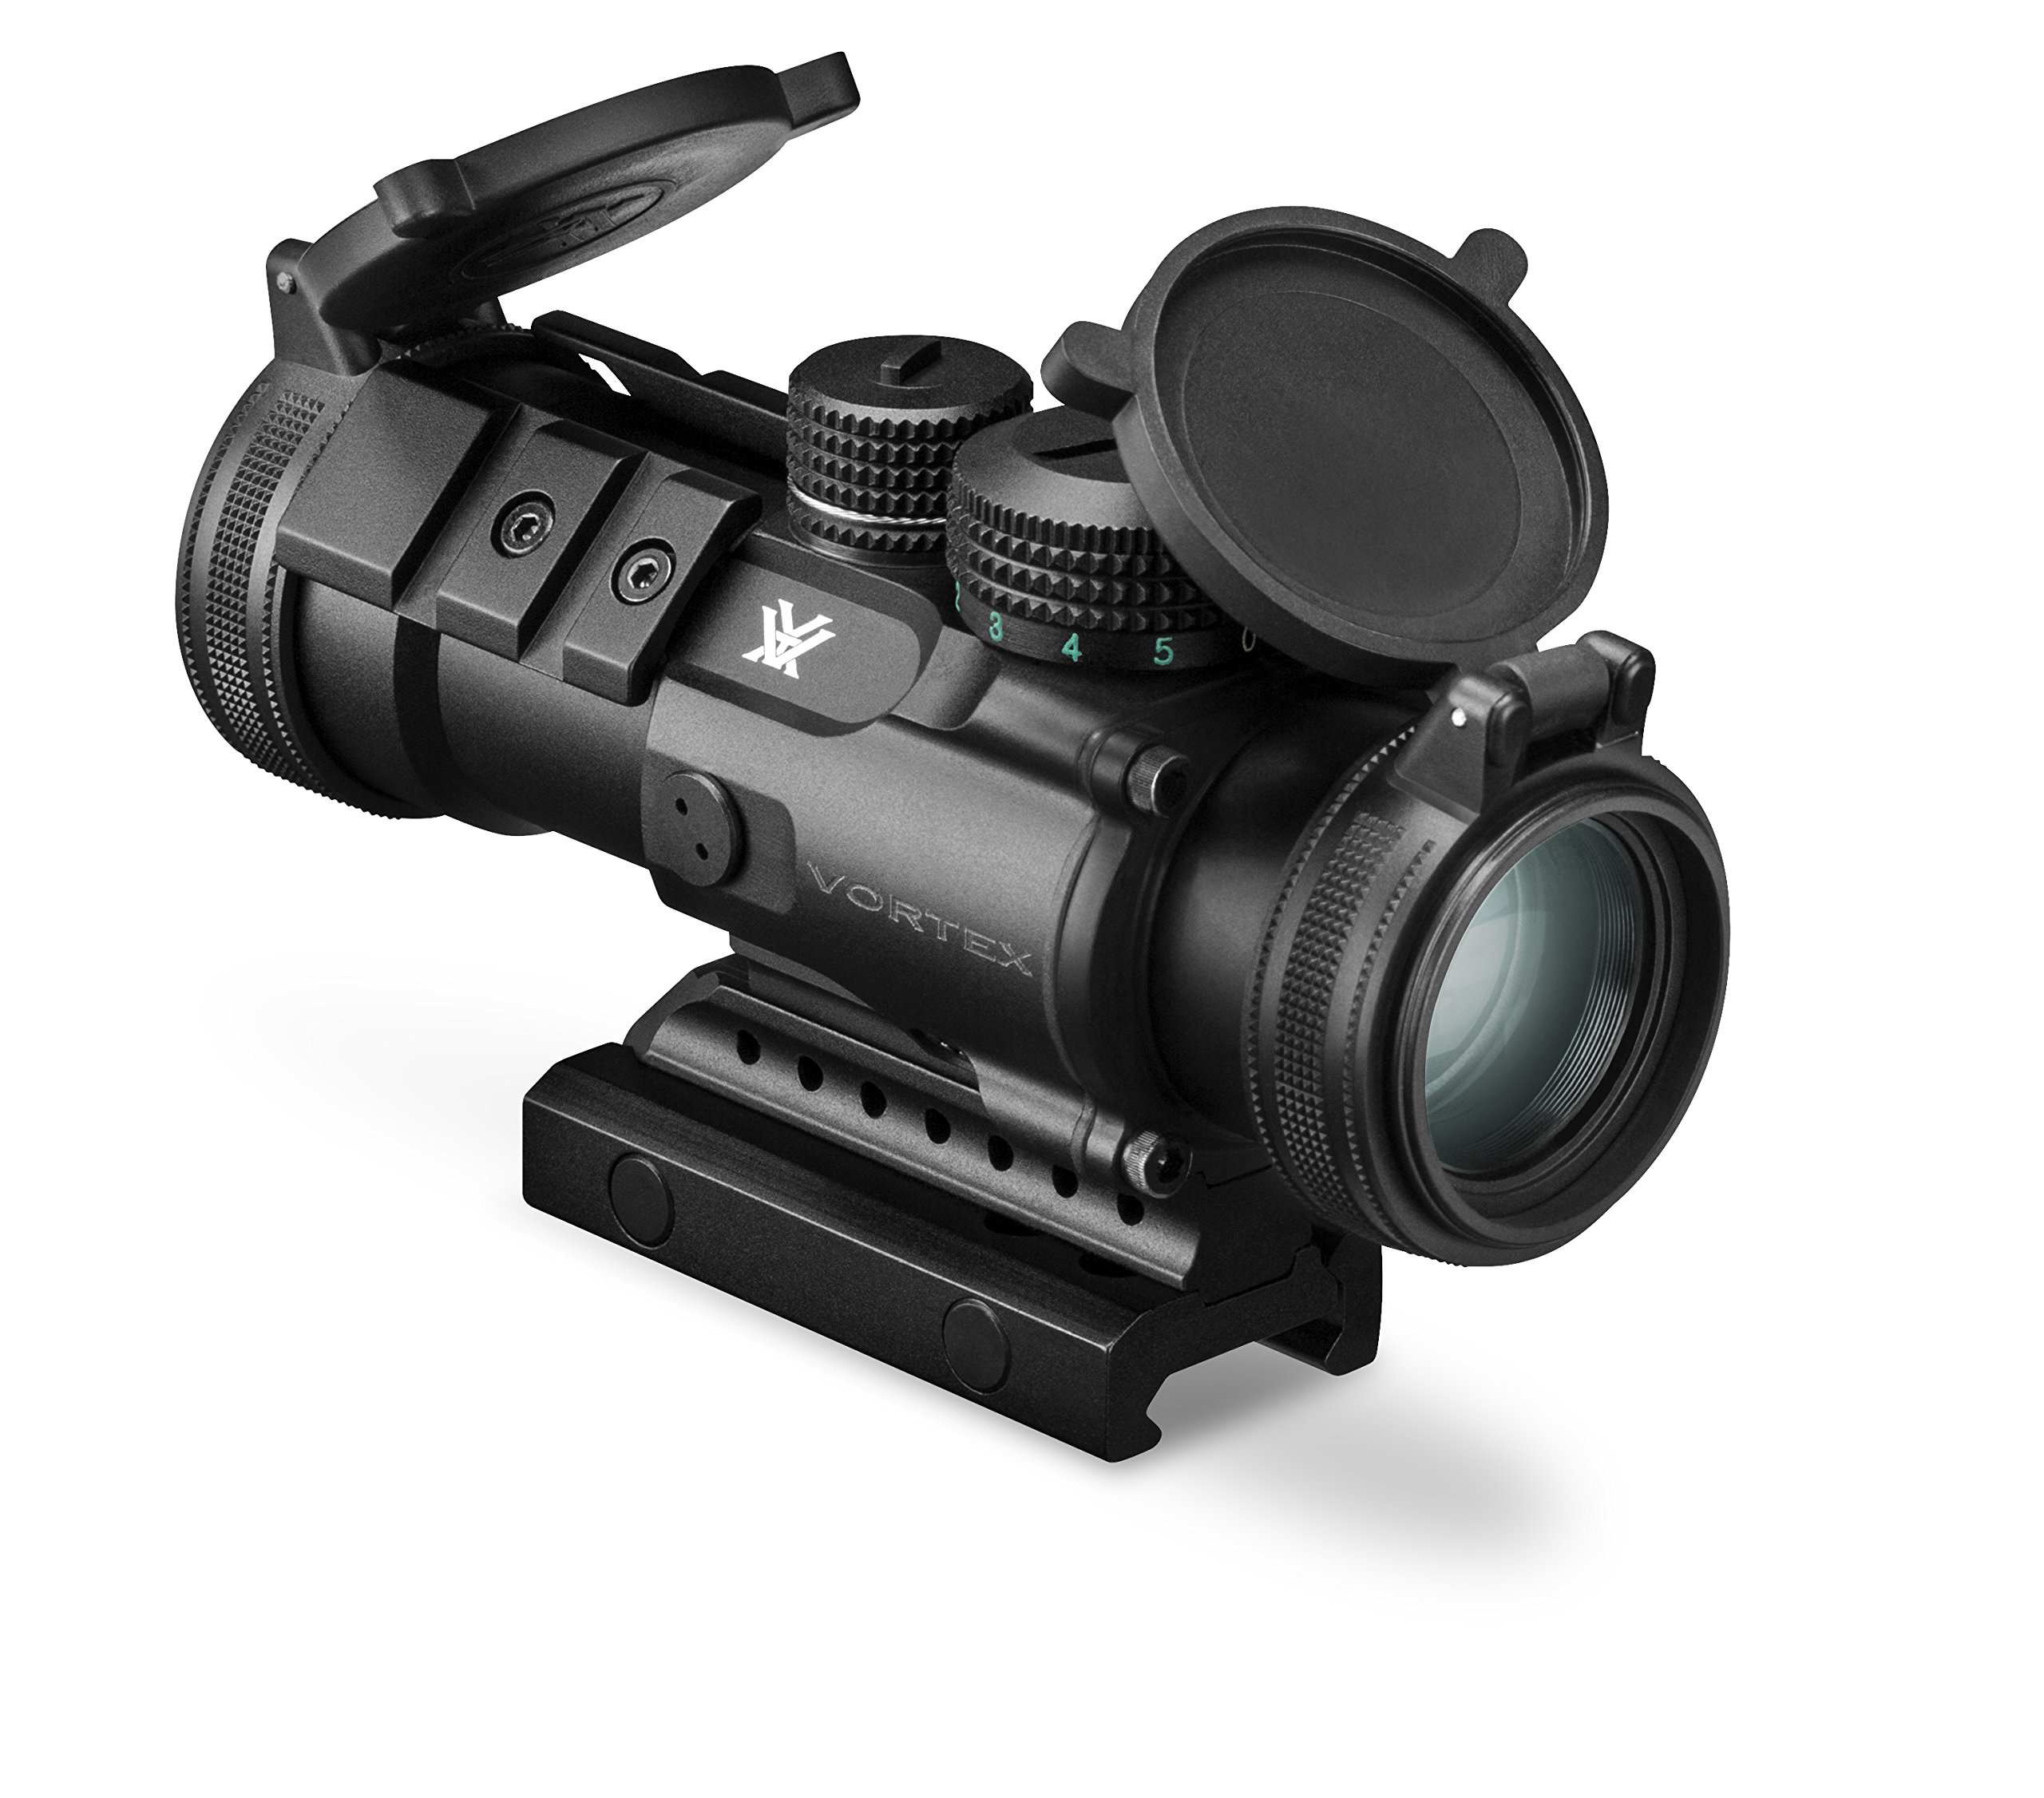 Vortex Optics Spitfire 3x Prism Scope - EBR-556B Reticle (MOA) by Vortex Optics (Image #2)